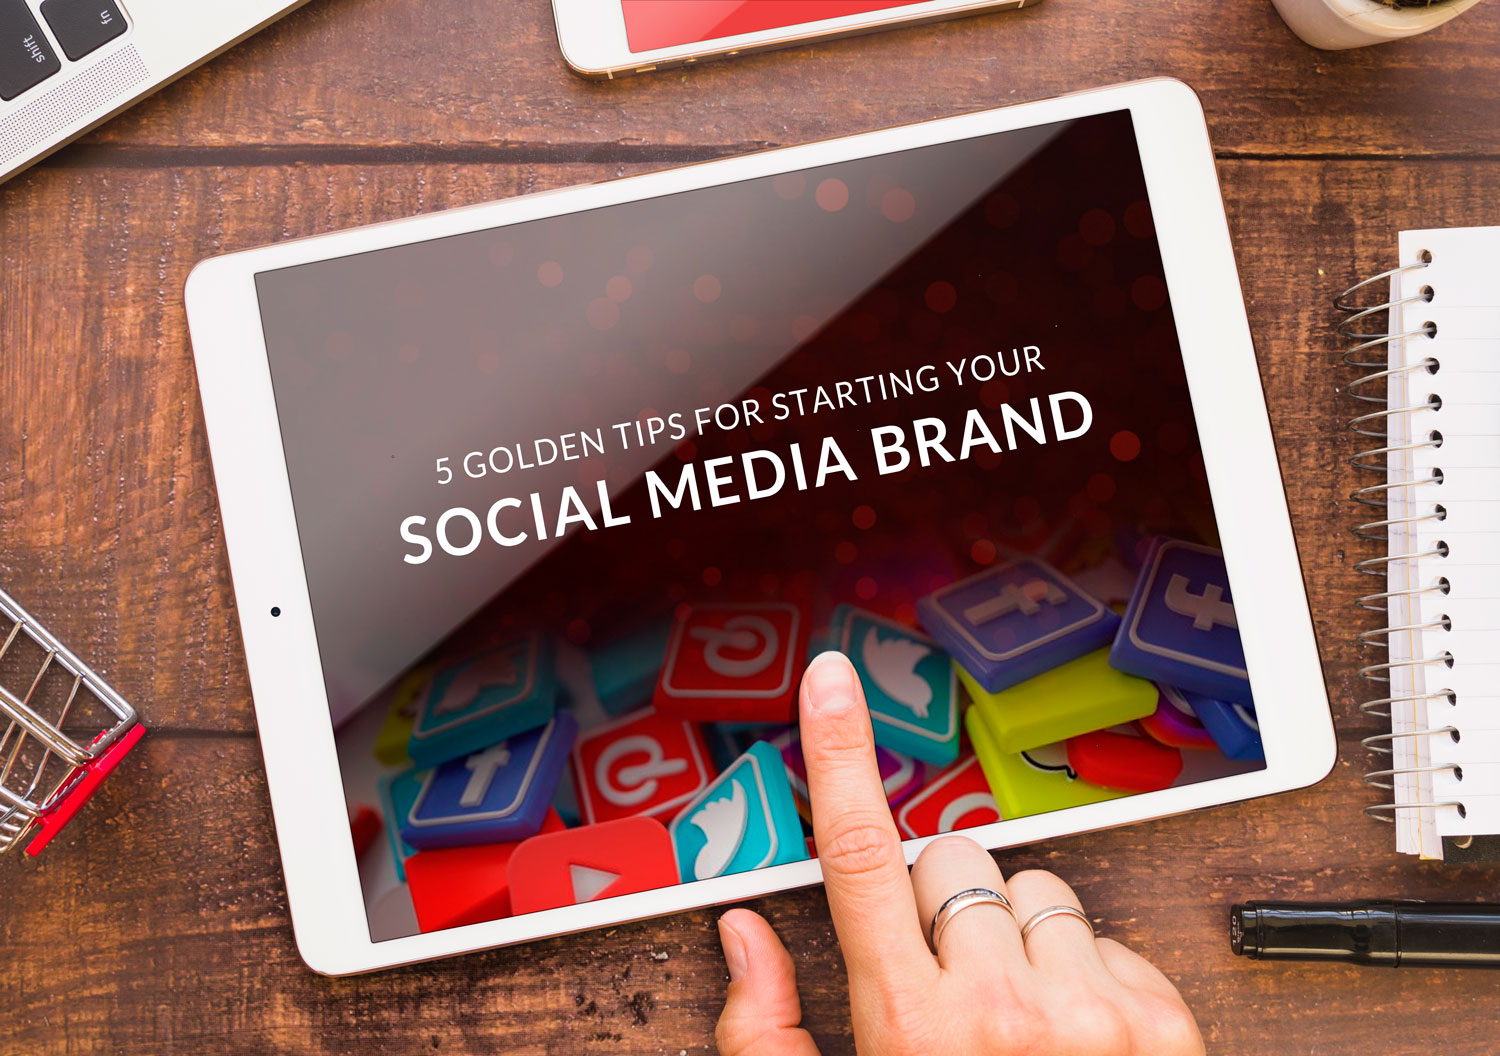 5 GOLDEN TIPS FOR STARTING YOUR SOCIAL MEDIA BRAND